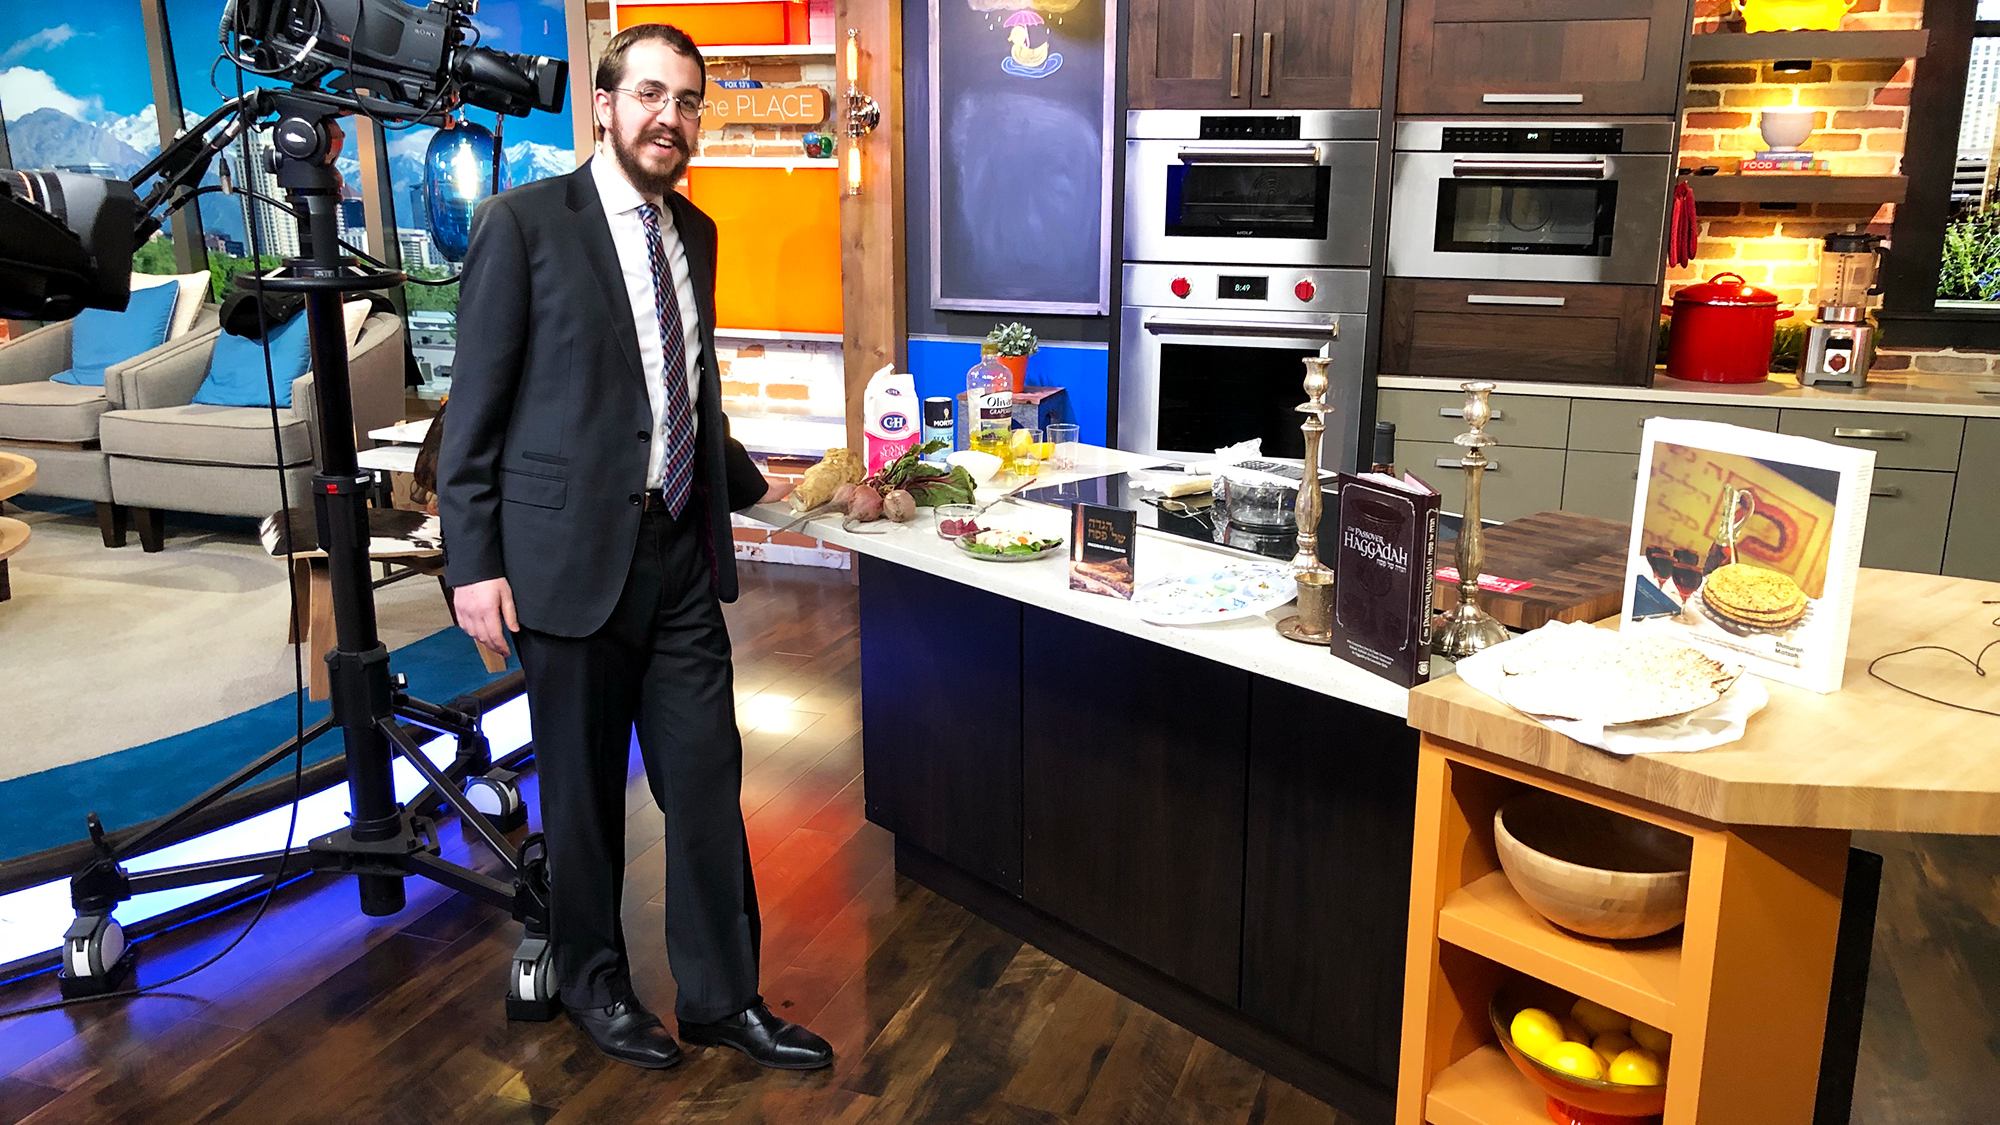 Rabbi Avremi Zippel, the program director at Chabad Lubavitch of Utah, during an appearance on Fox 13 to talk about Passover food.